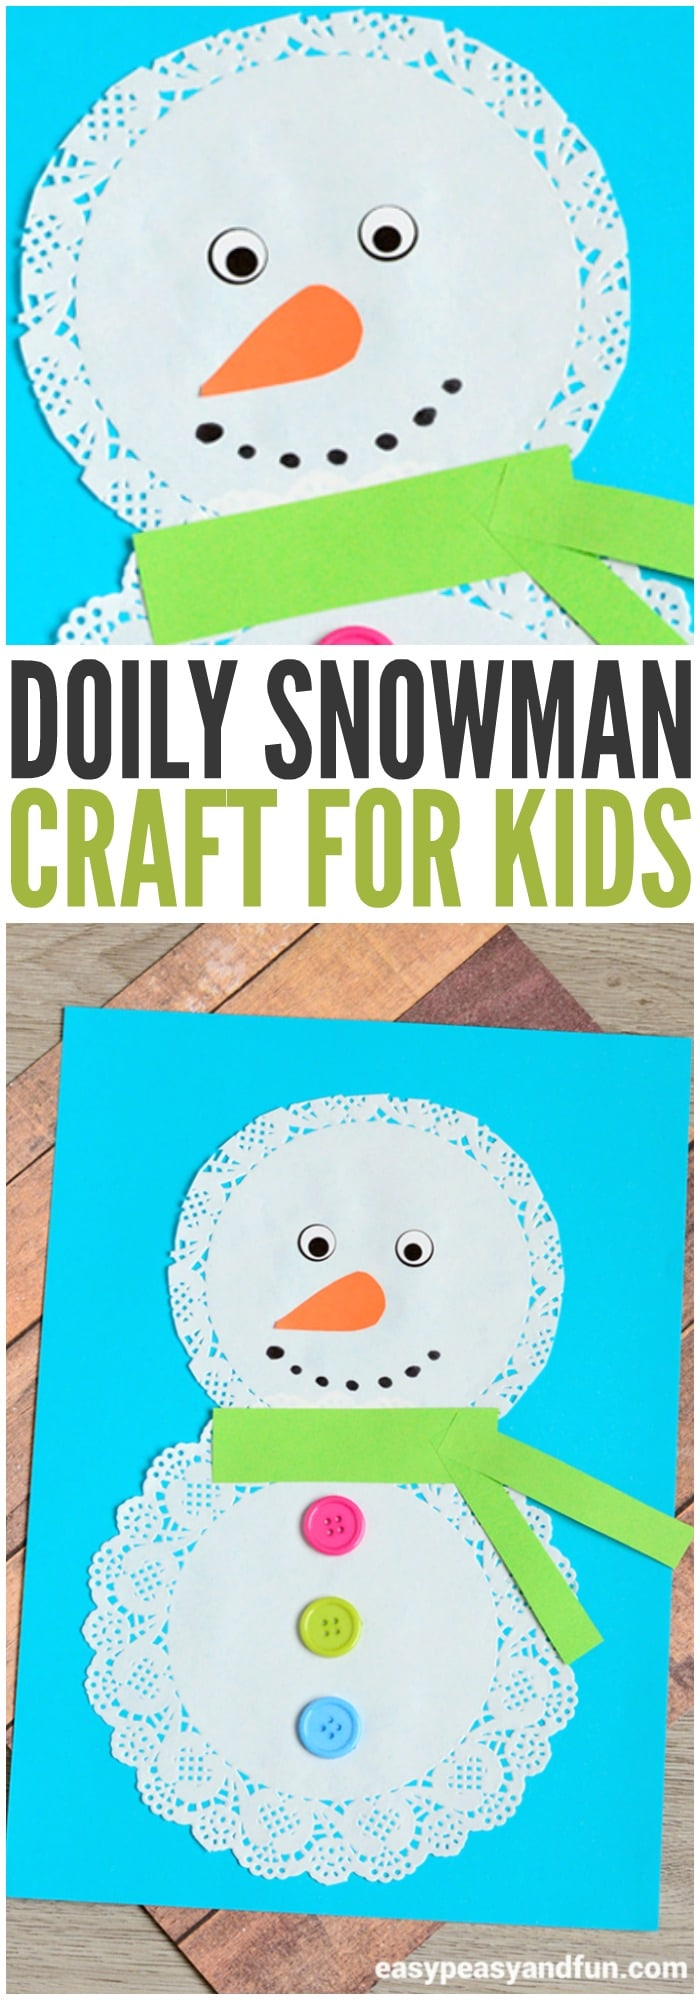 preschool winter crafts ideas doily snowman craft easy peasy and 5273